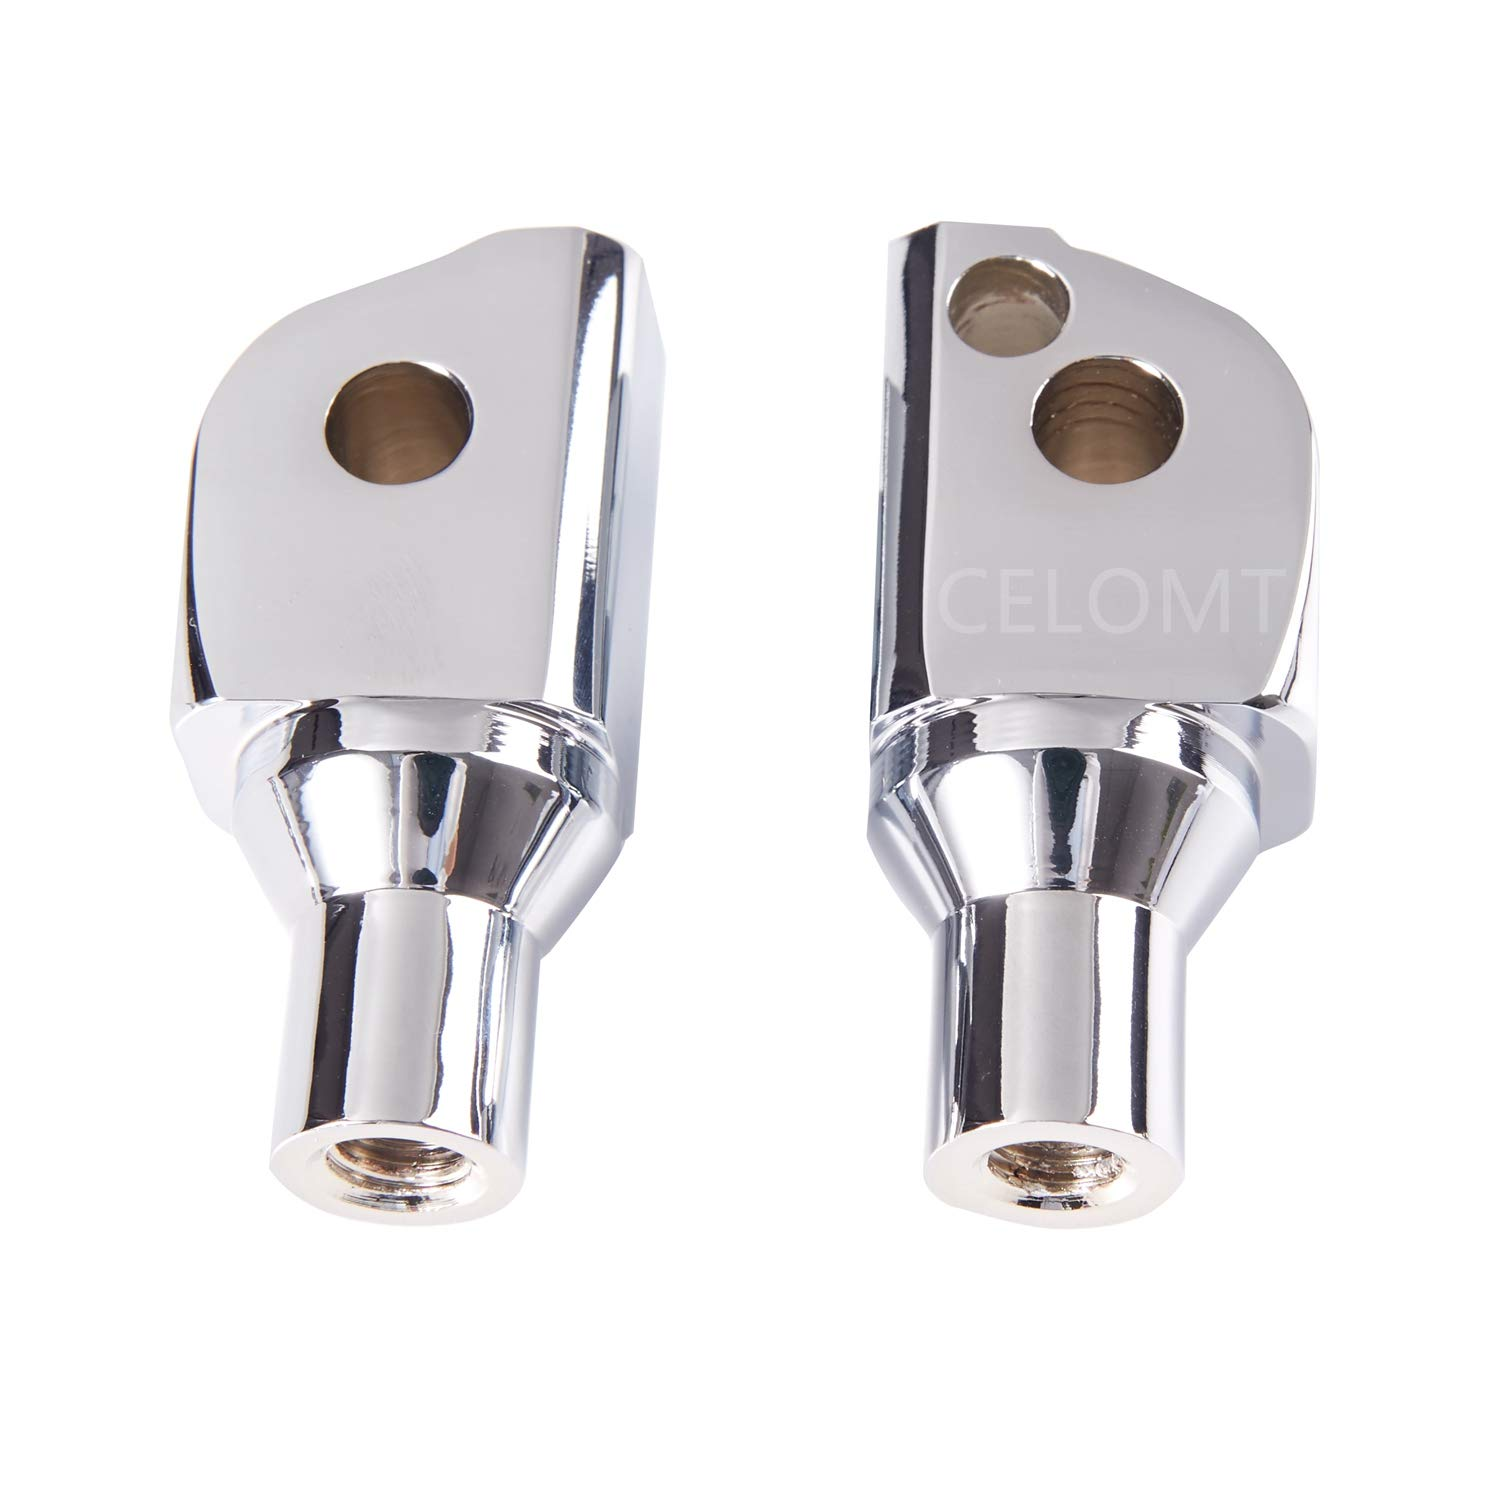 Chrome Rear Passenger Foot Pegs Adapters Compatible With 2018-2020 Harley Softail Fat Boy Heritage Classic Deluxe Street Bob